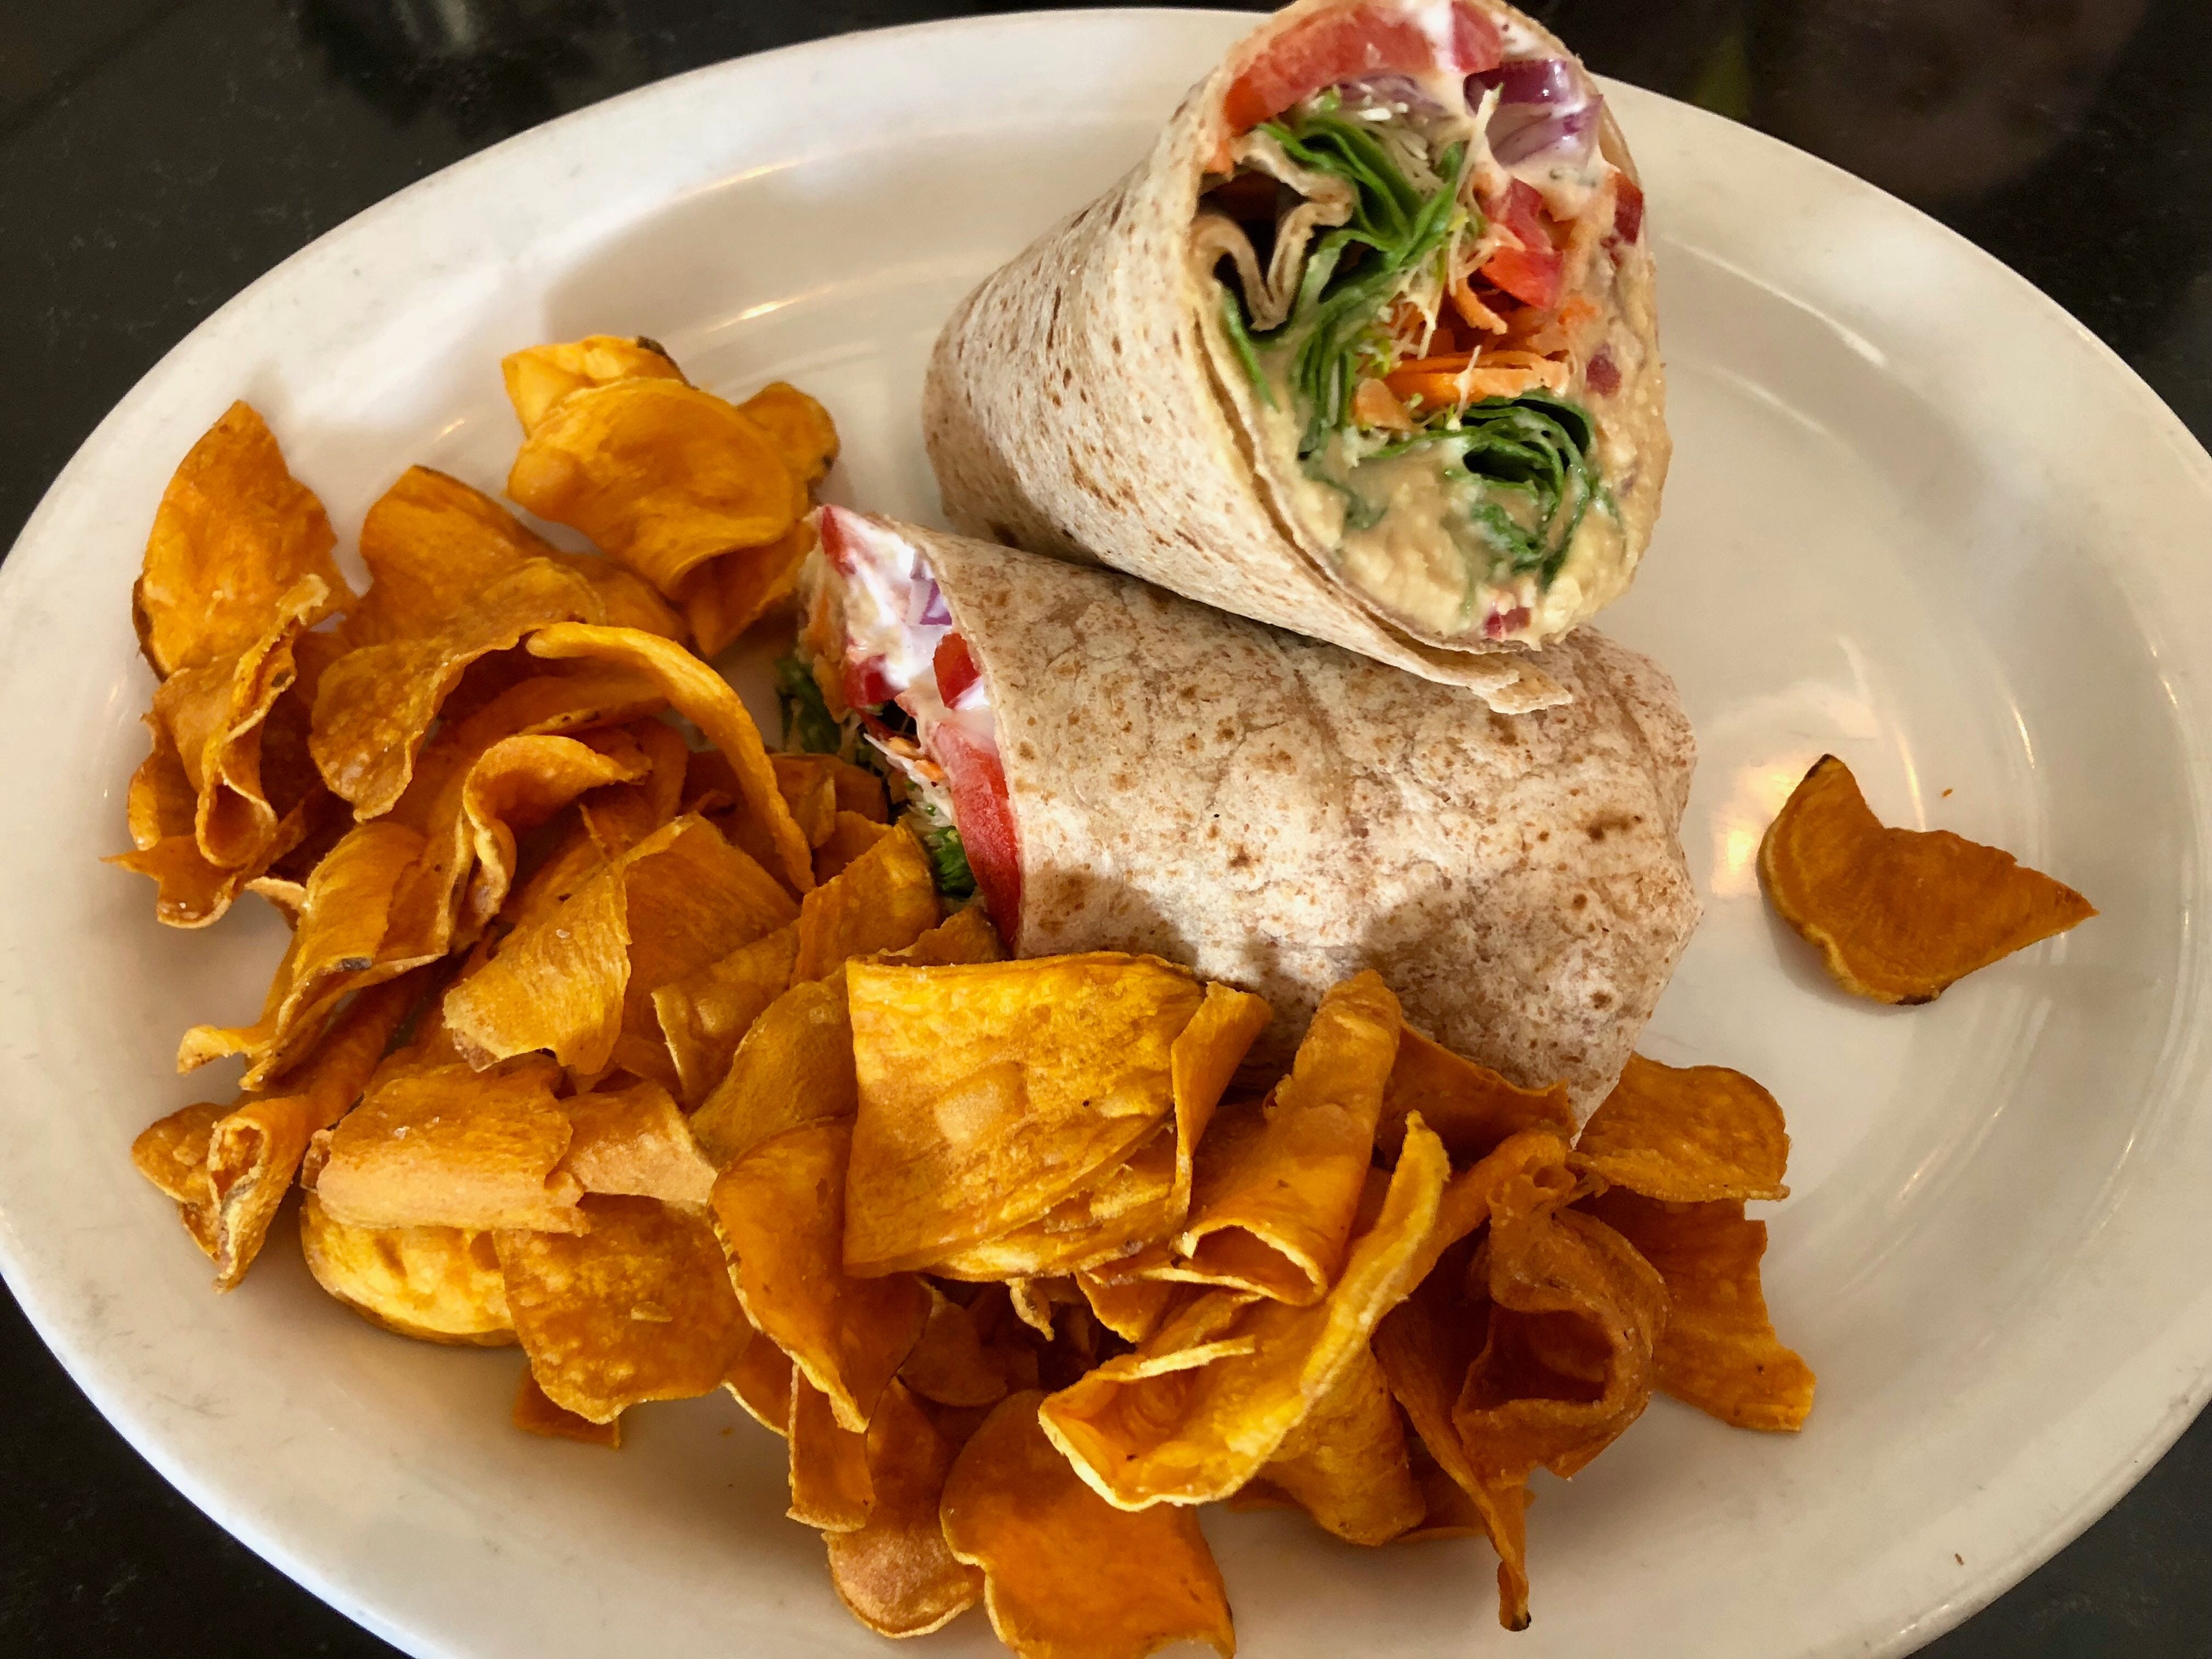 A veggie wrap brimming with hummus, tzatziki sauce and local vegetables at The Local restaurant in North Naples.